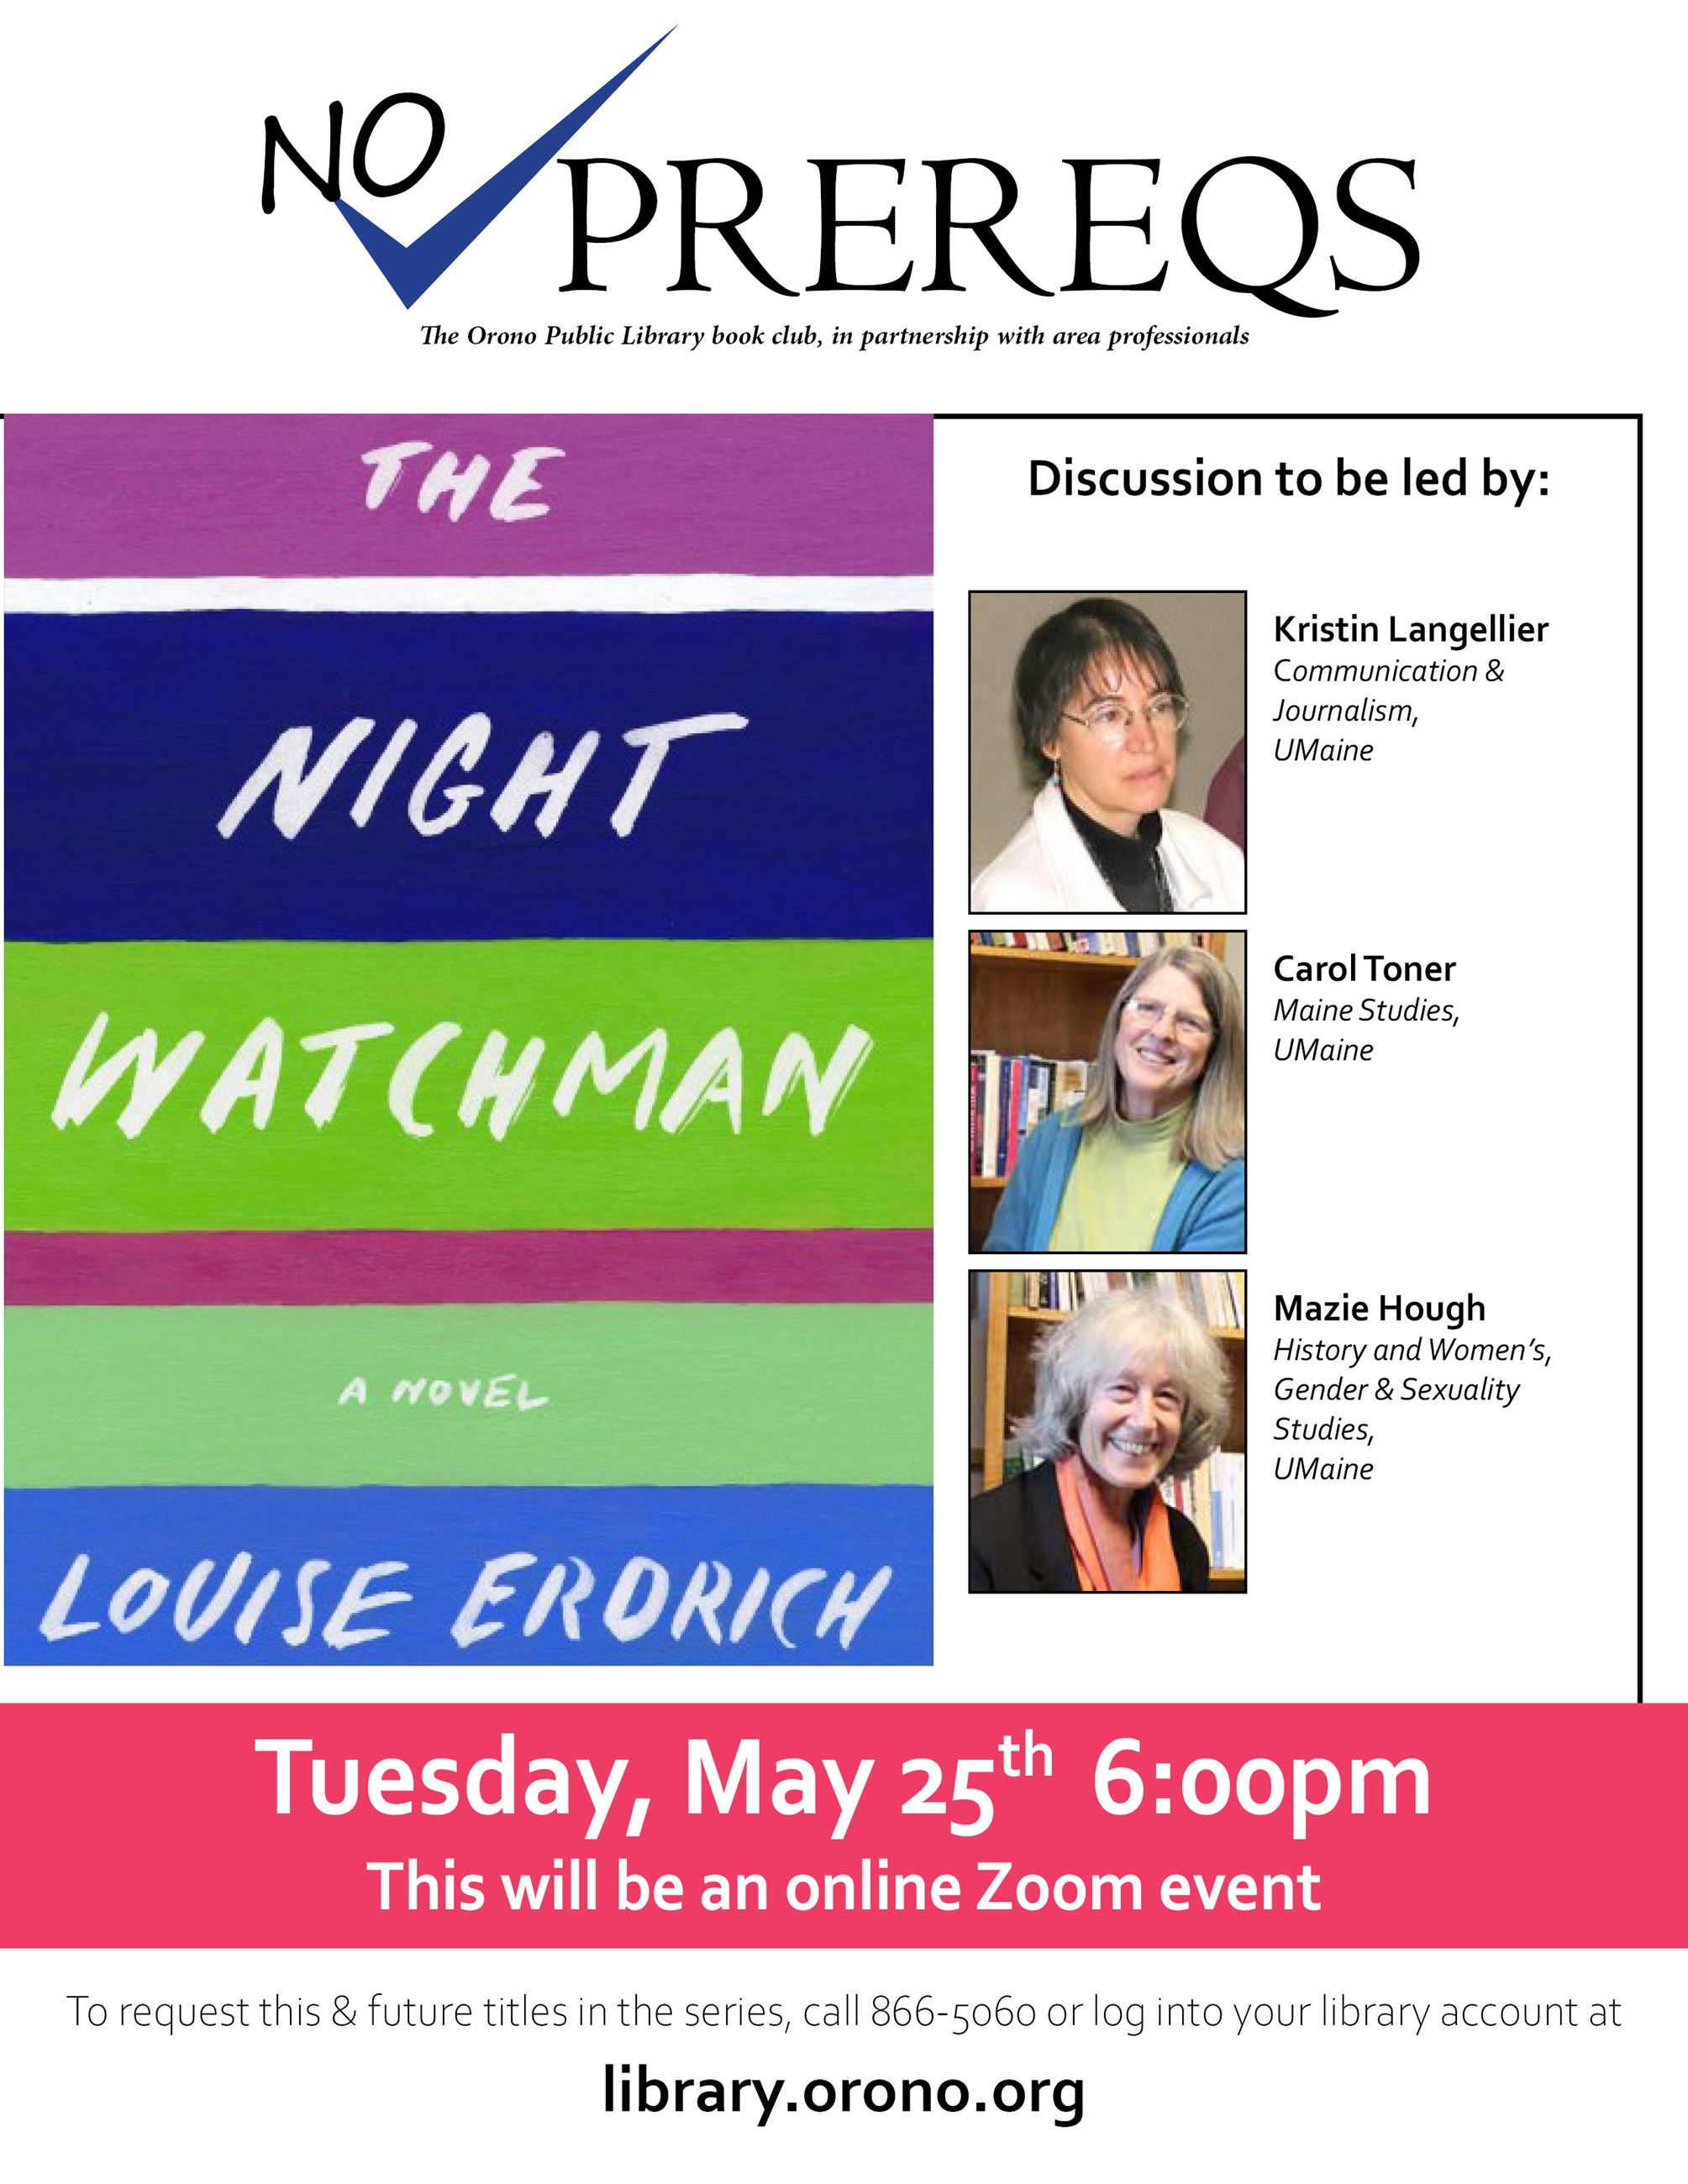 The Night Watchman book talk 5/25 at 6pm